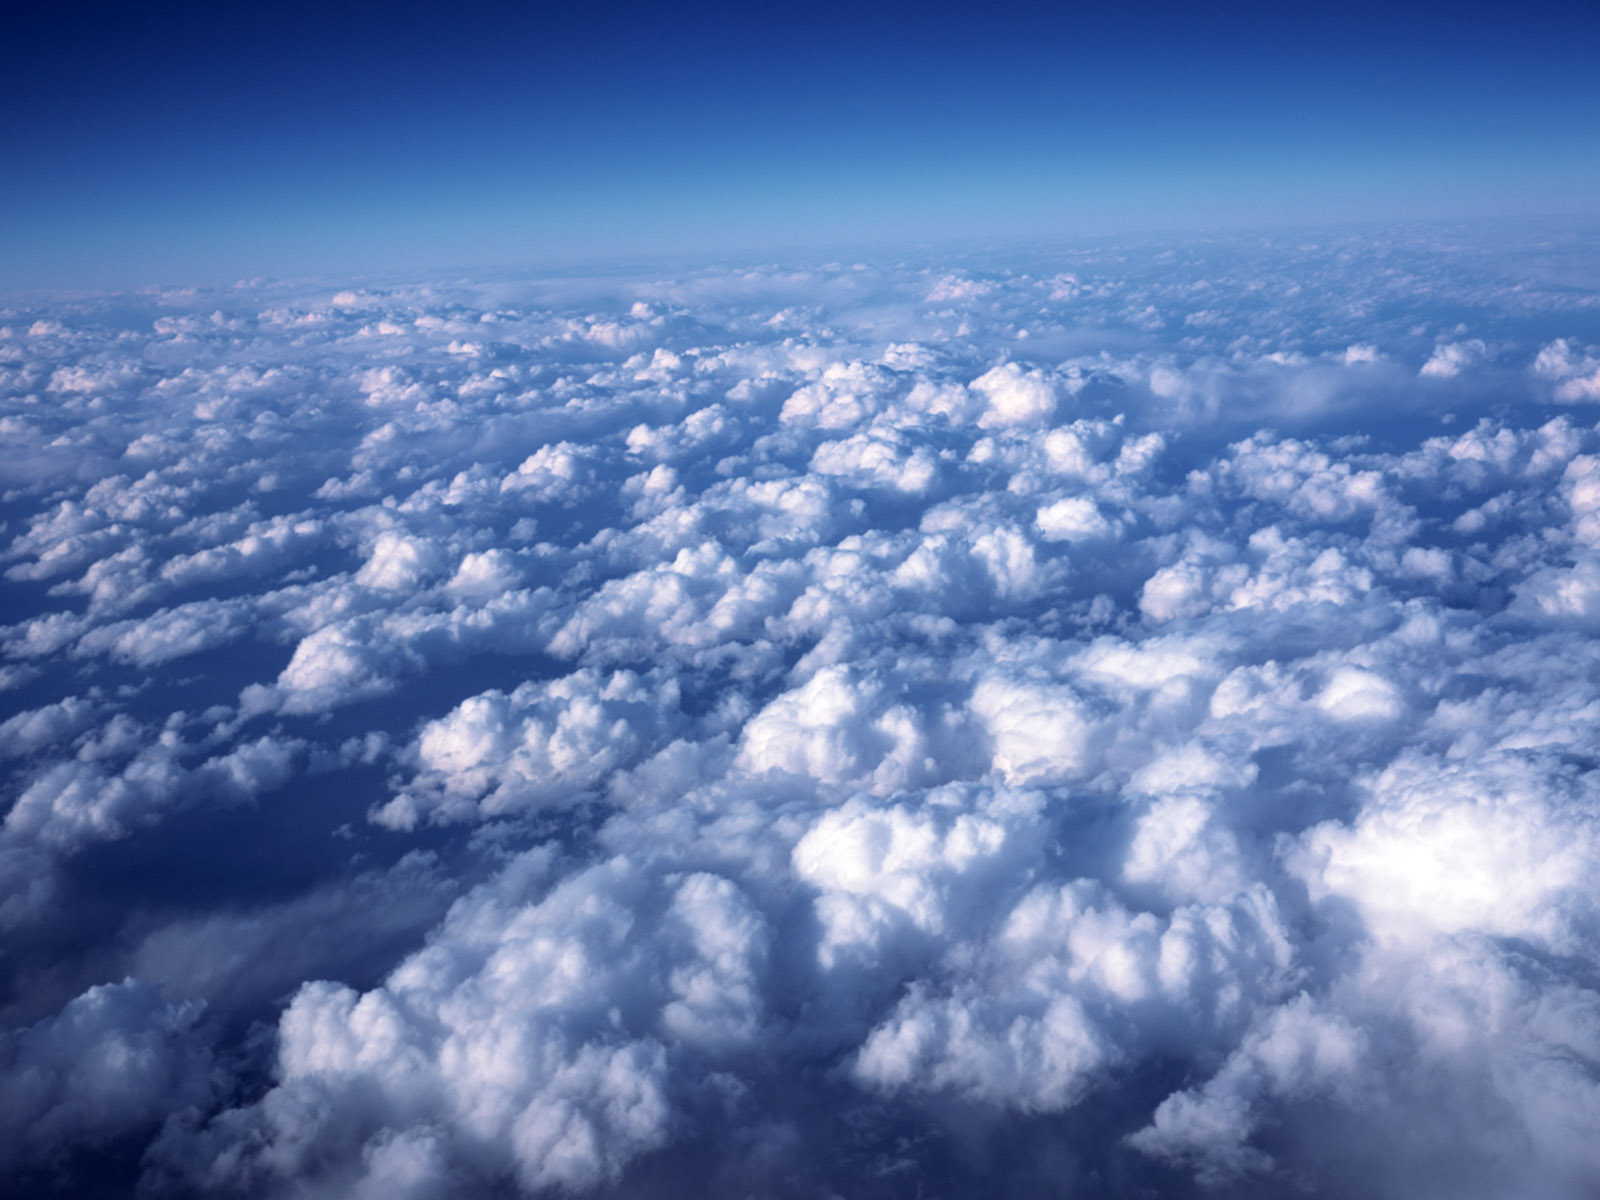 Cloud desktop wallpaper wallpapersafari - Desktop wallpaper 1600x1200 ...